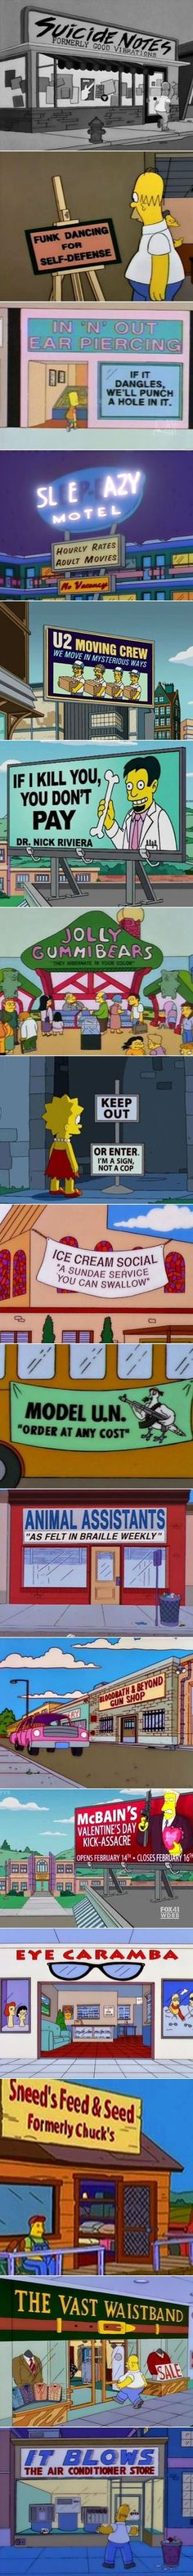 Best signs from the simpsons